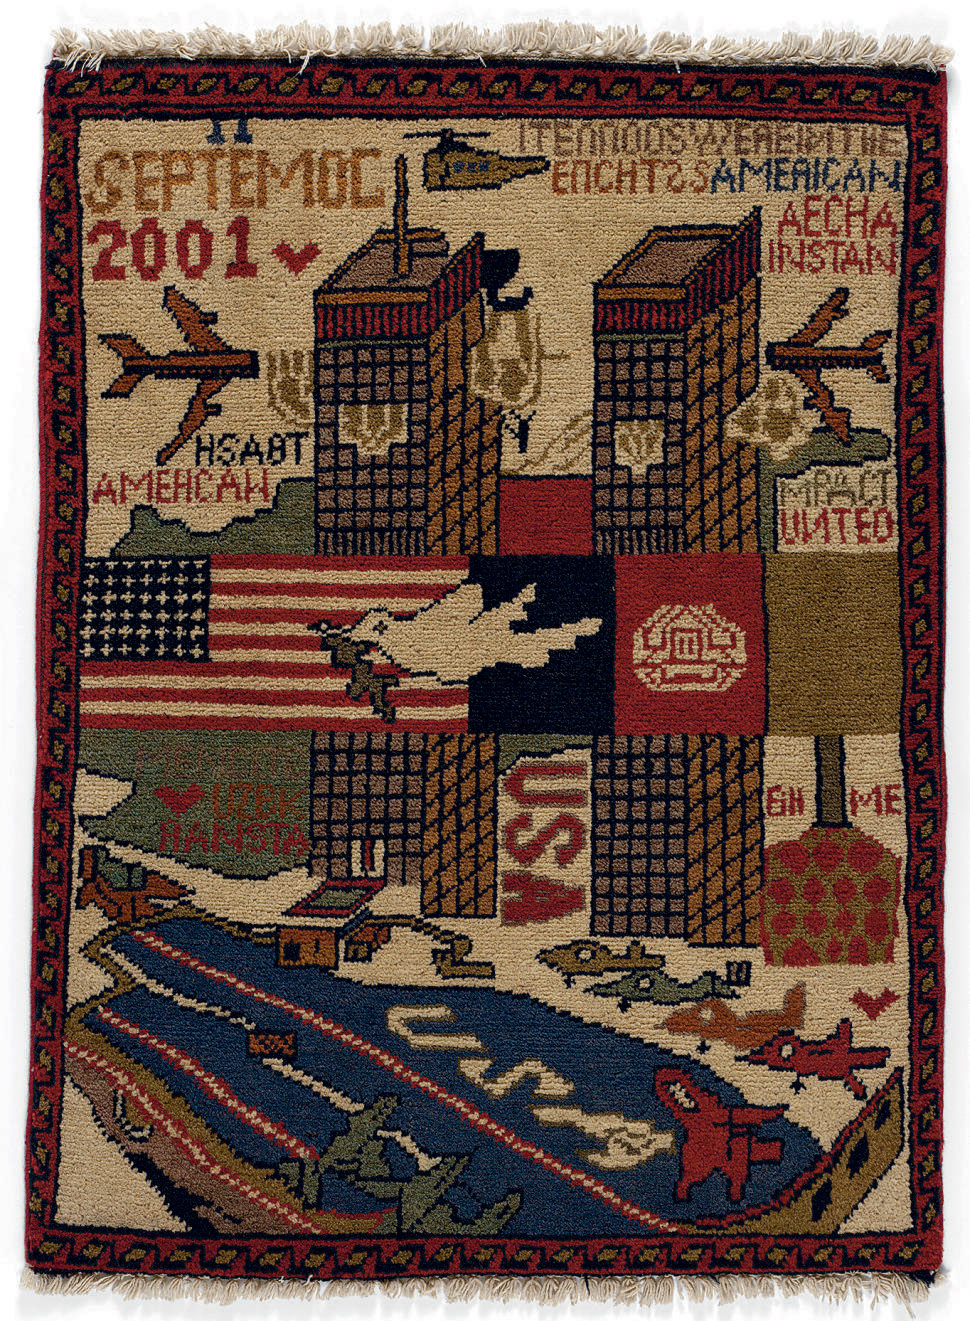 Made in Afghanistan, 2001-06